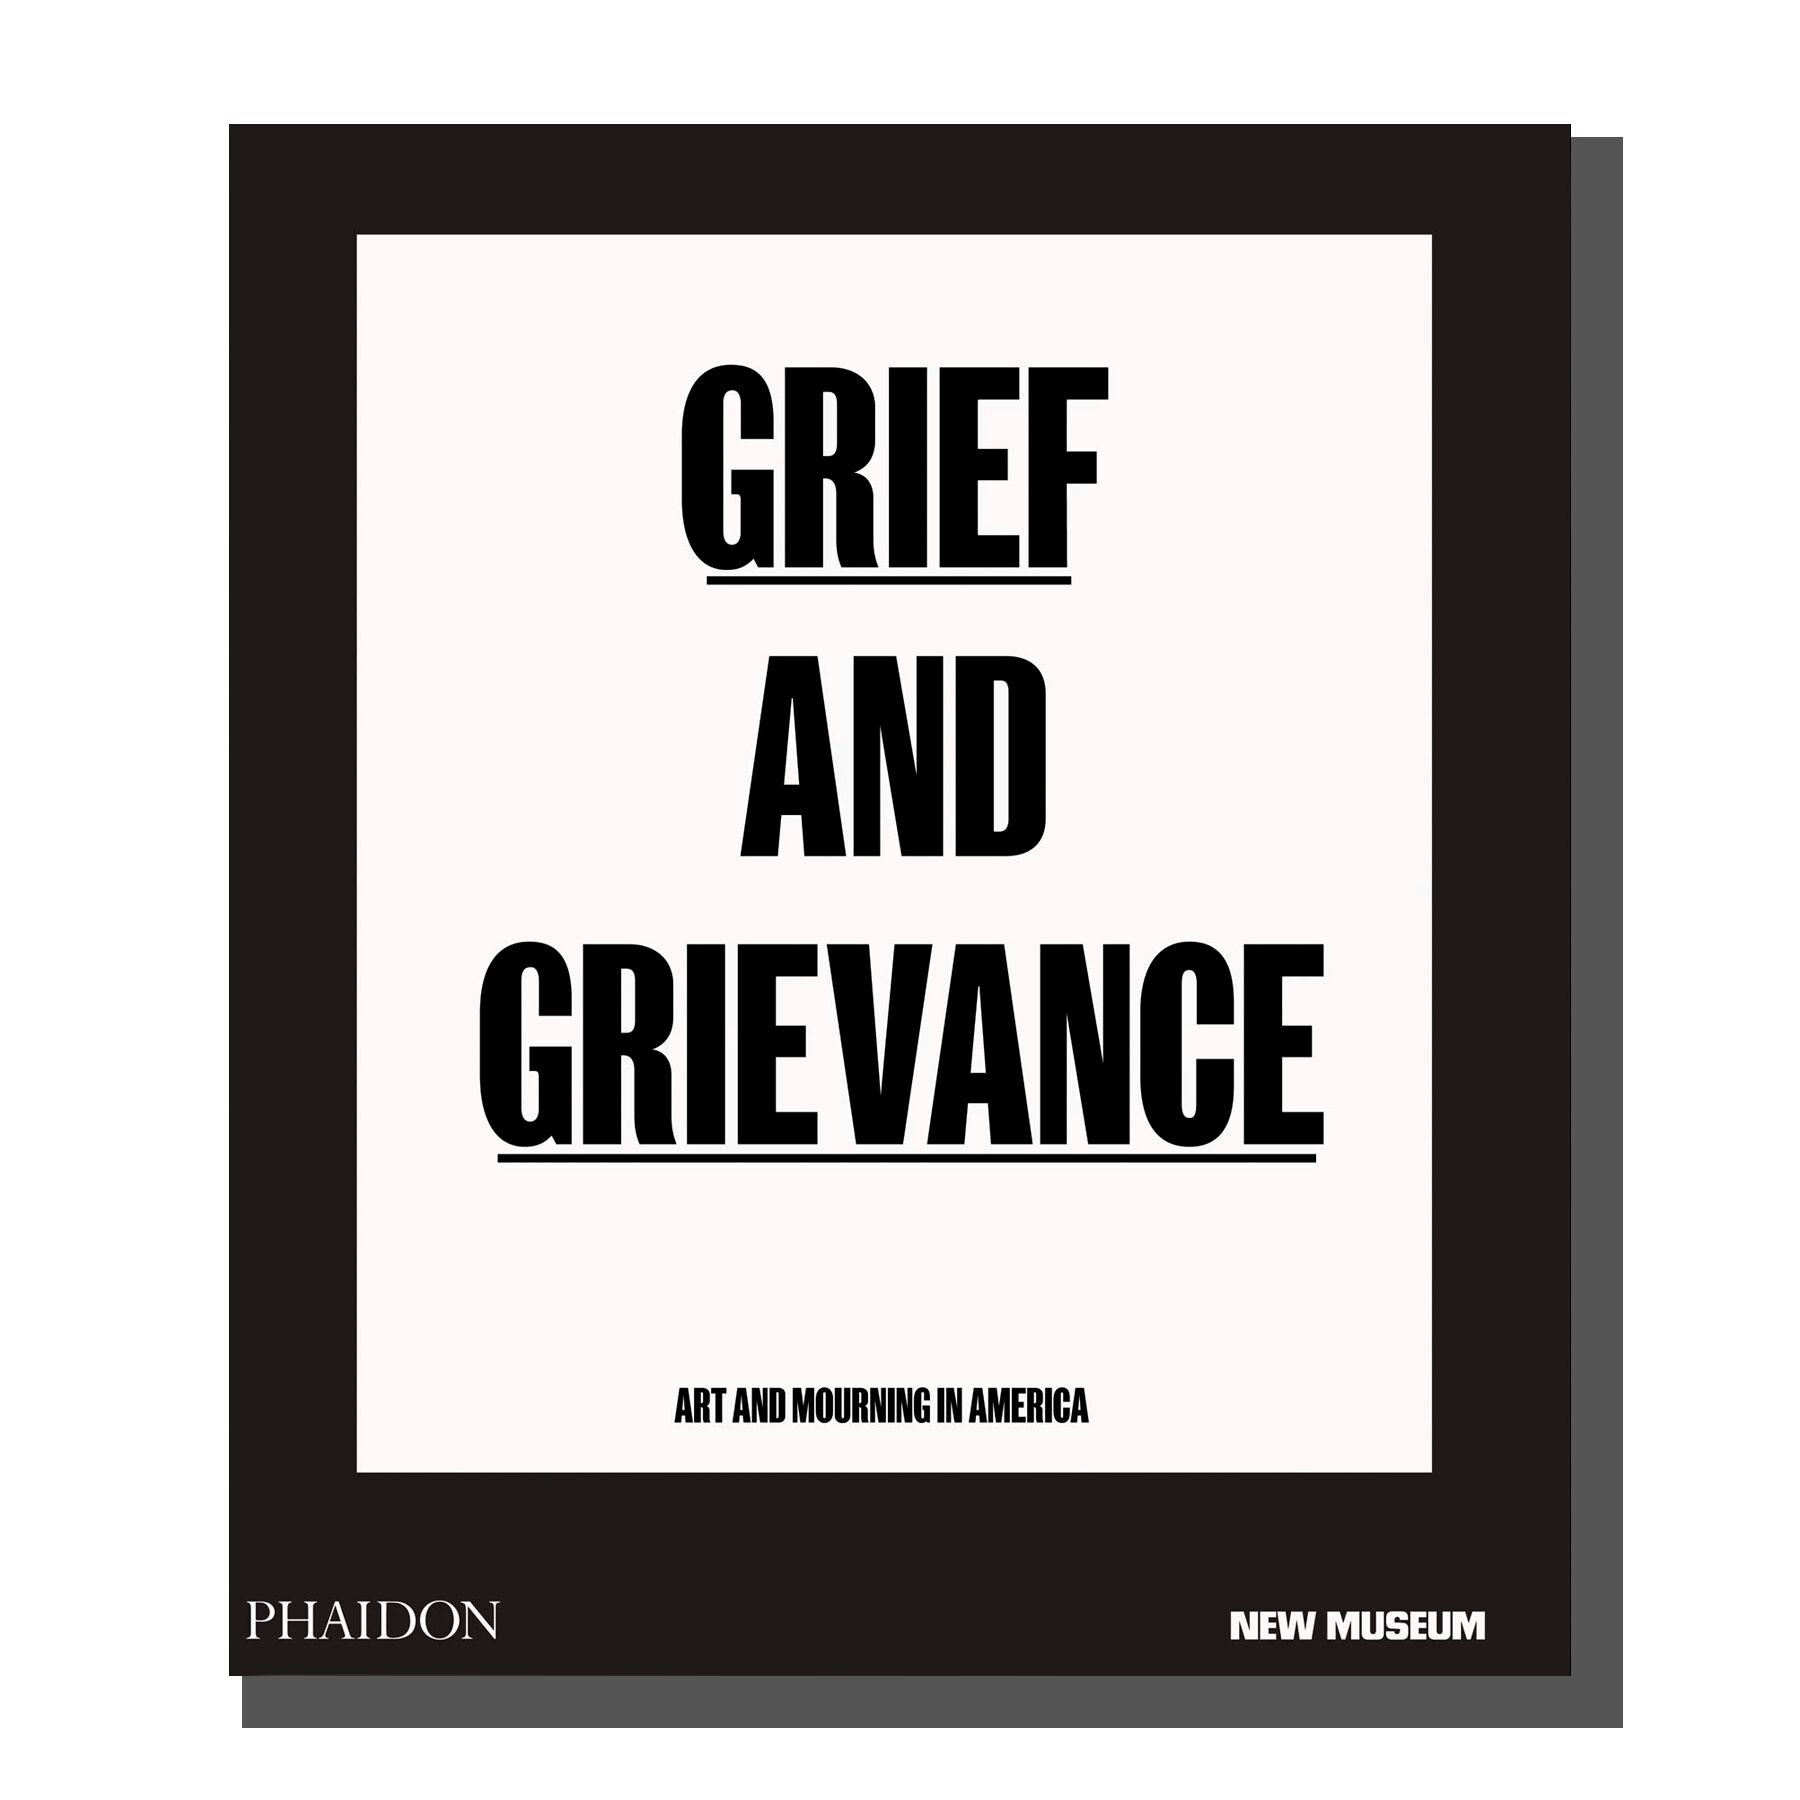 Grief and Grievance: Art and Mourning in America (New Museum)